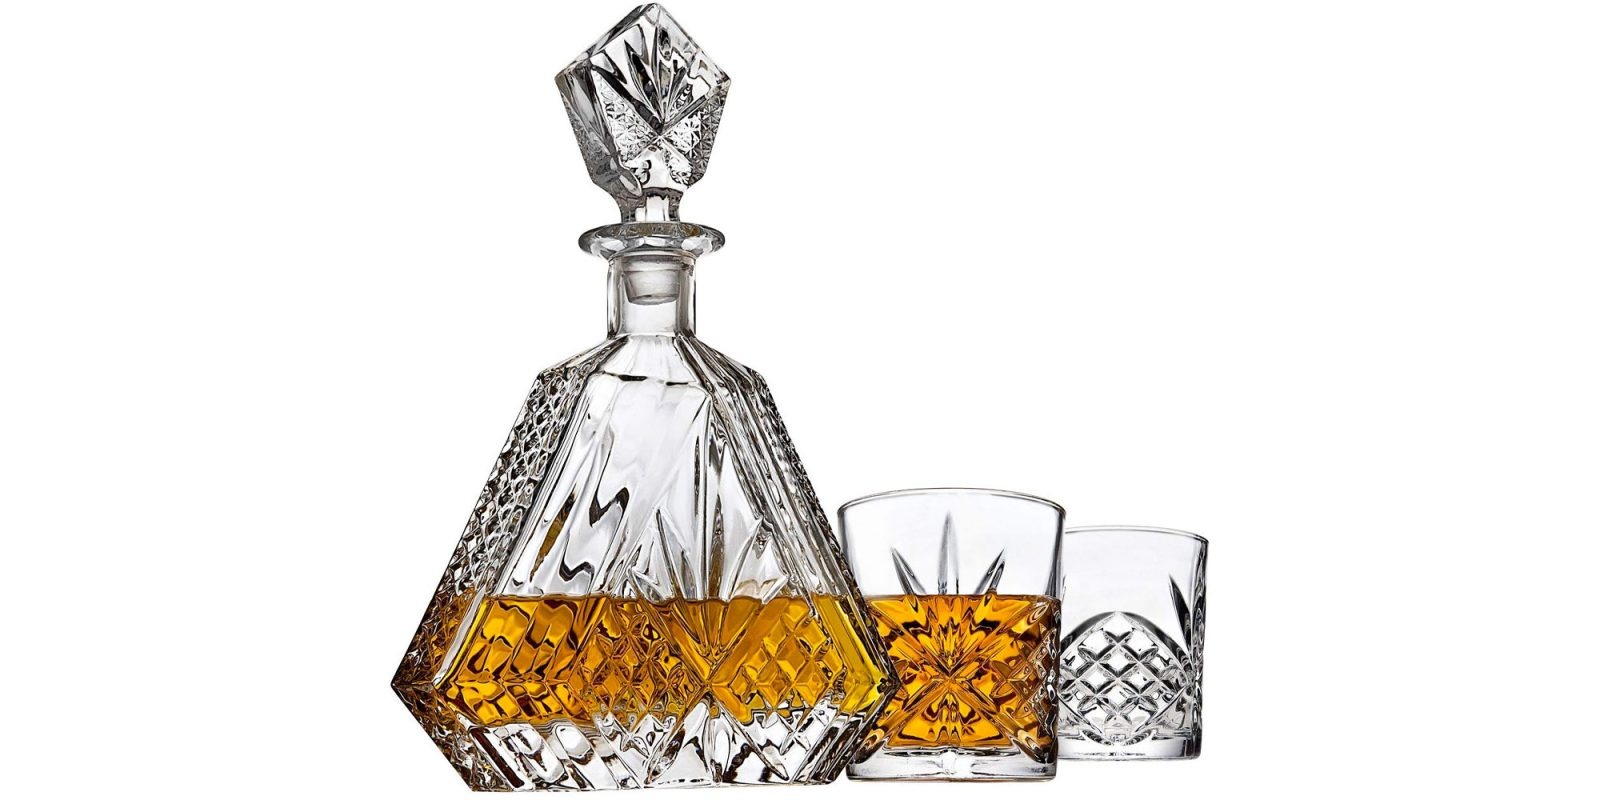 Amazon's Gold Box has whiskey decanter sets and other barware from $9.50